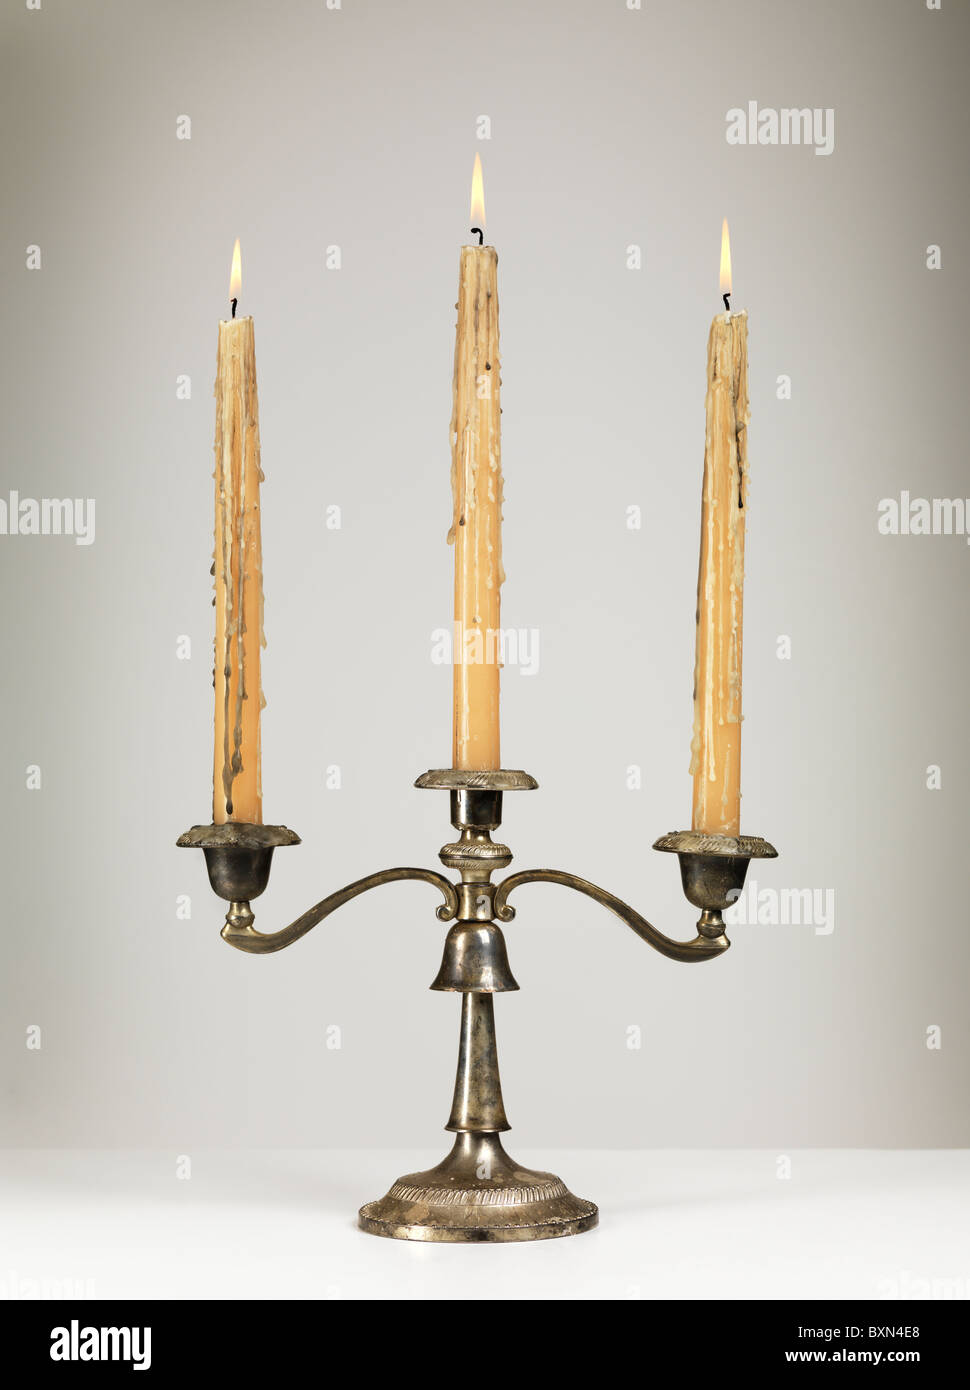 Antique silver triple candle holder candelabra isolated on gray background - Stock Image